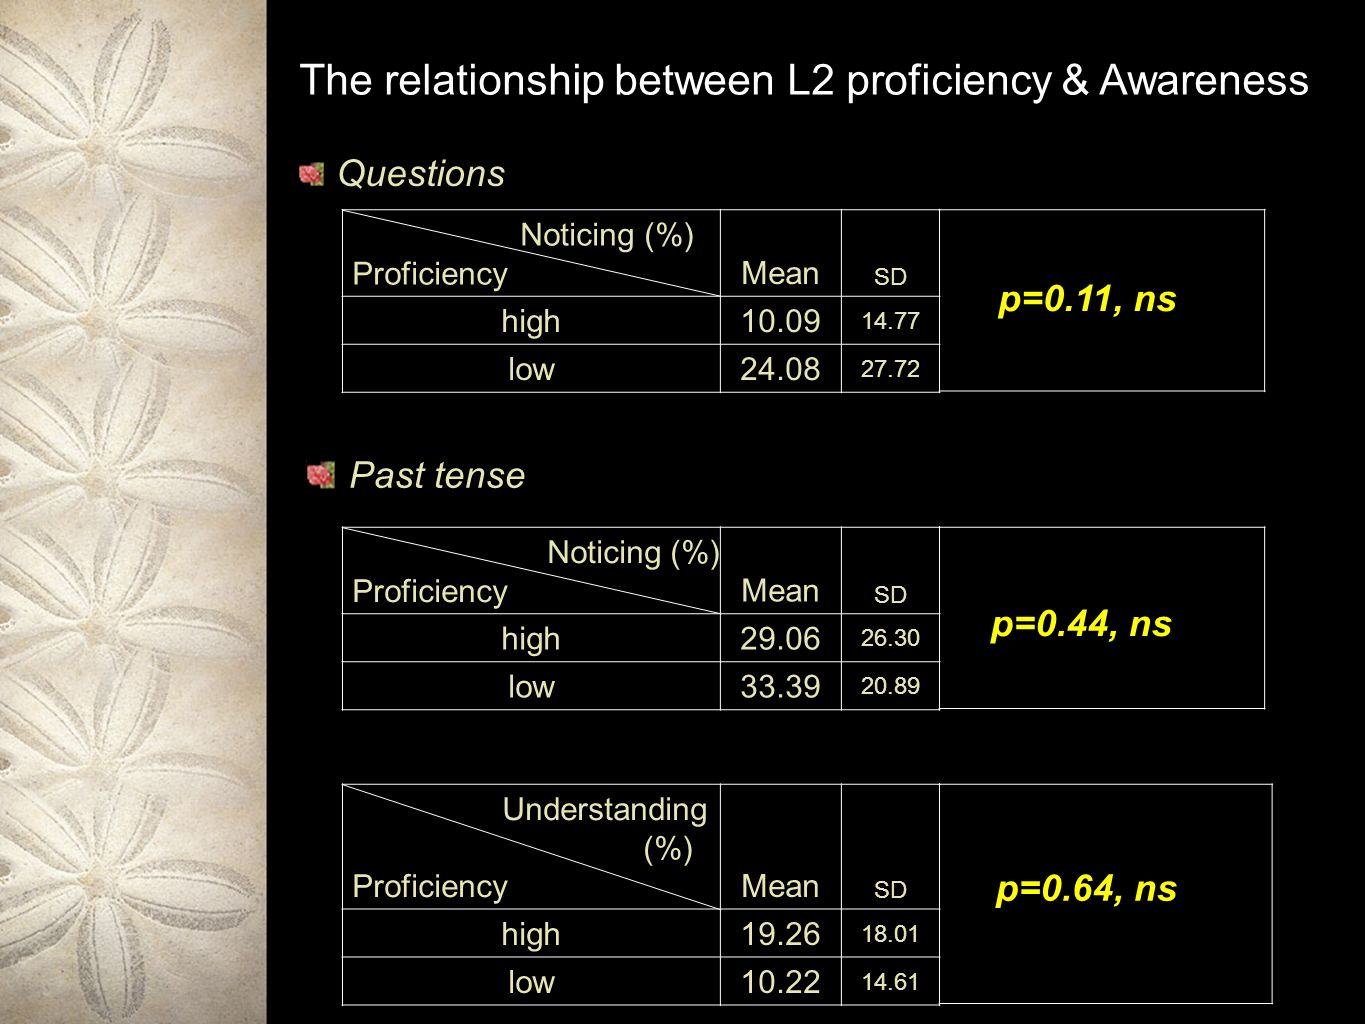 Past tense The relationship between L2 proficiency & Awareness